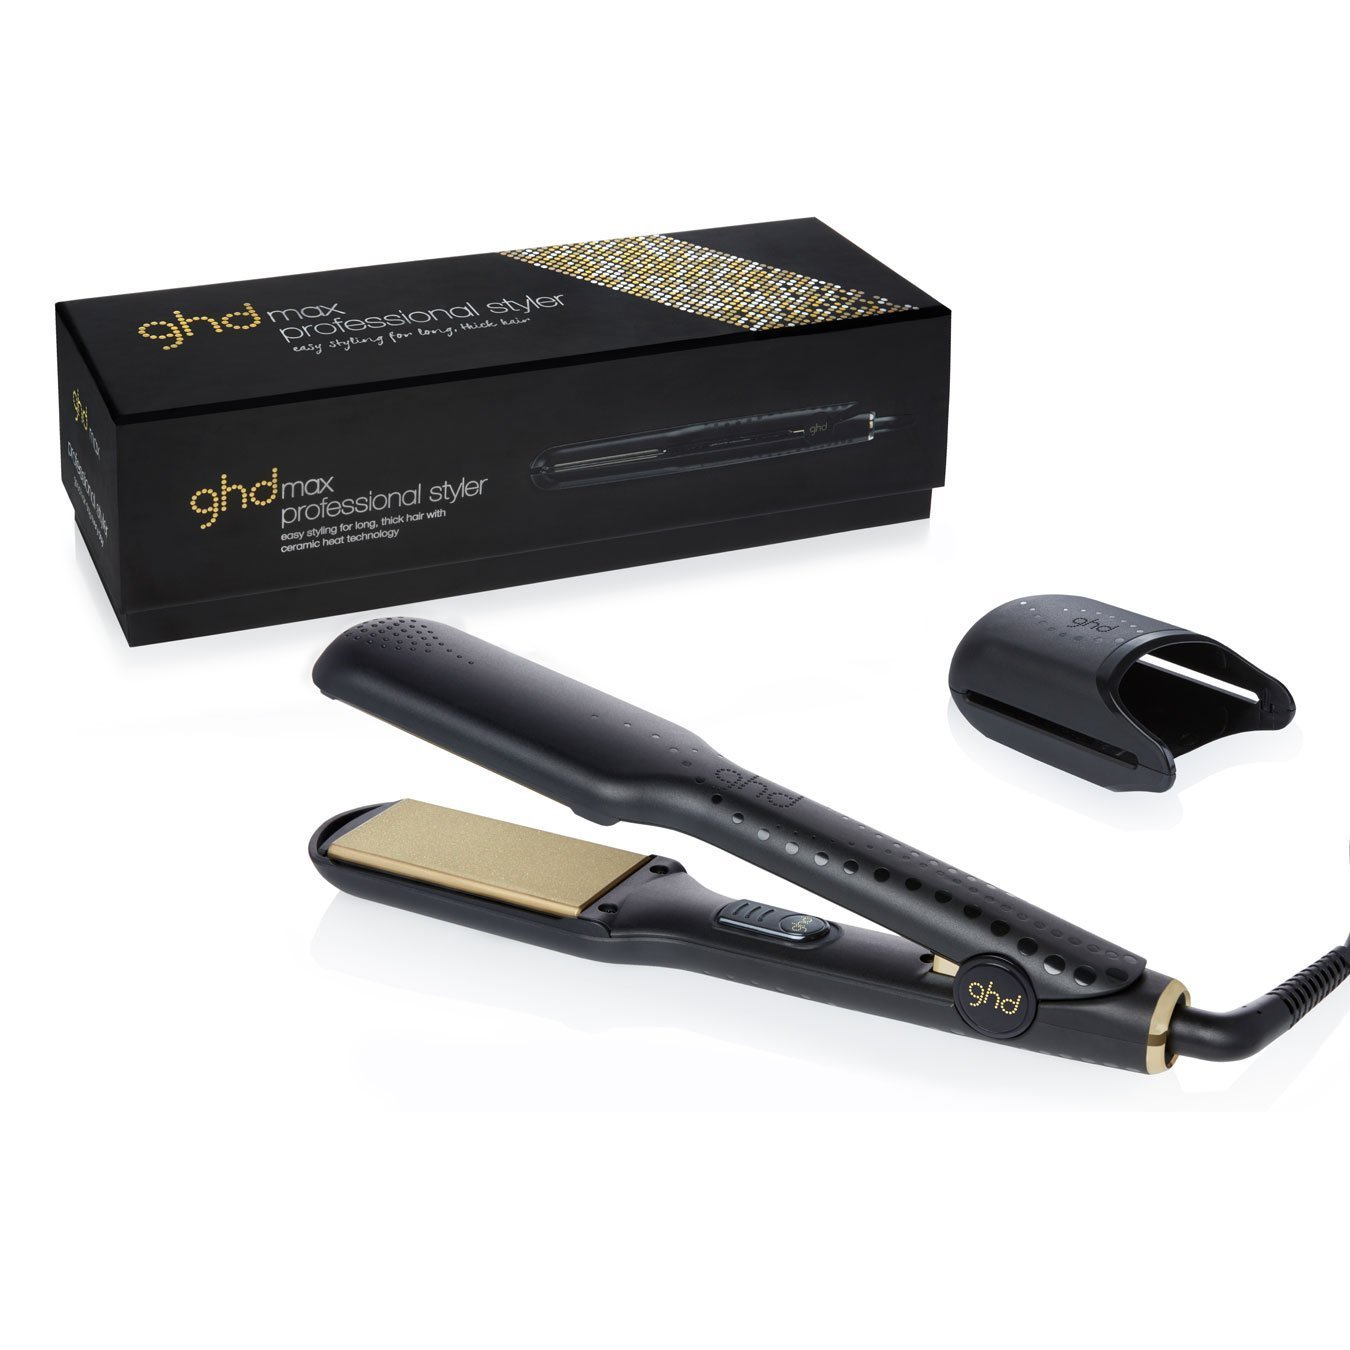 ghd V max professional styler (packaging may vary)